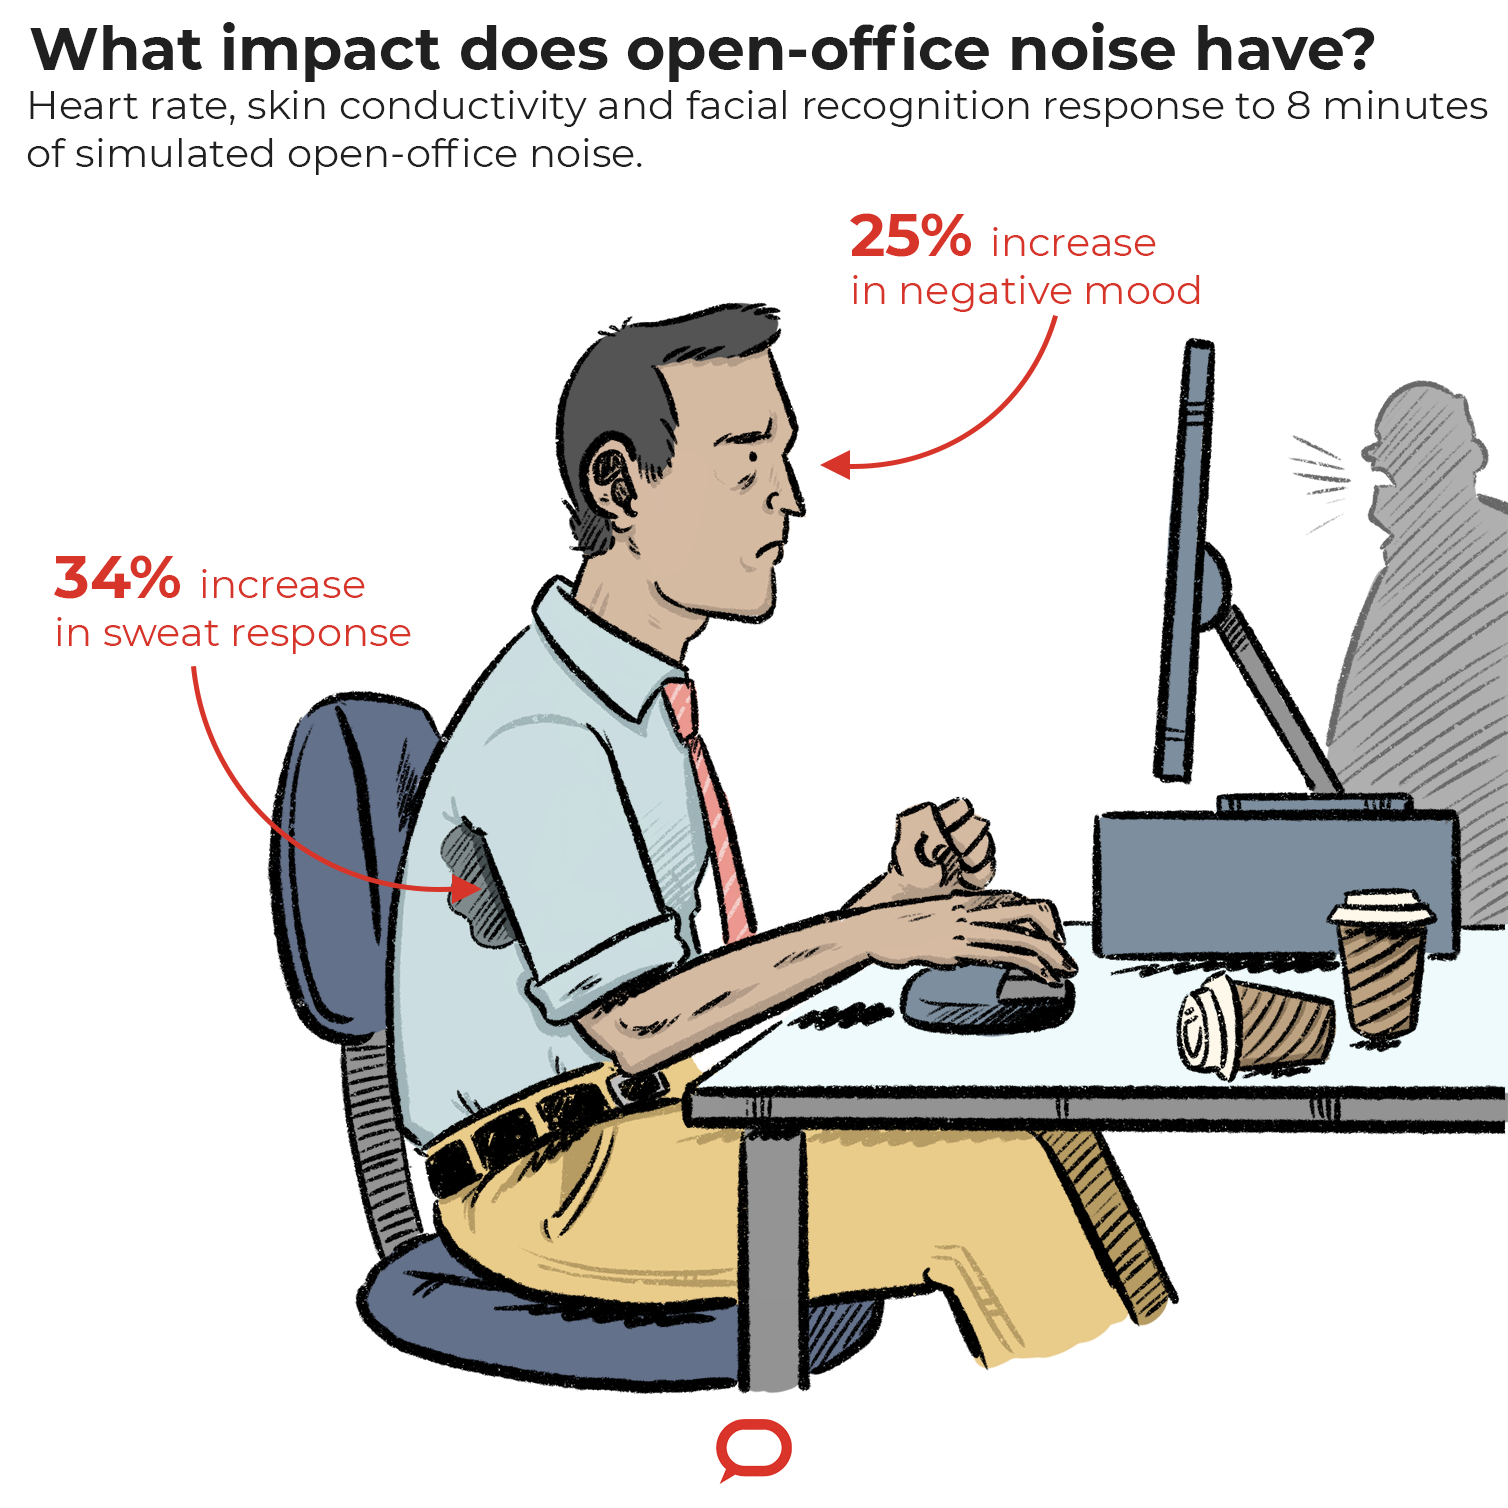 An illustration shows a worker at a computer, with diagrams and study statistics around him